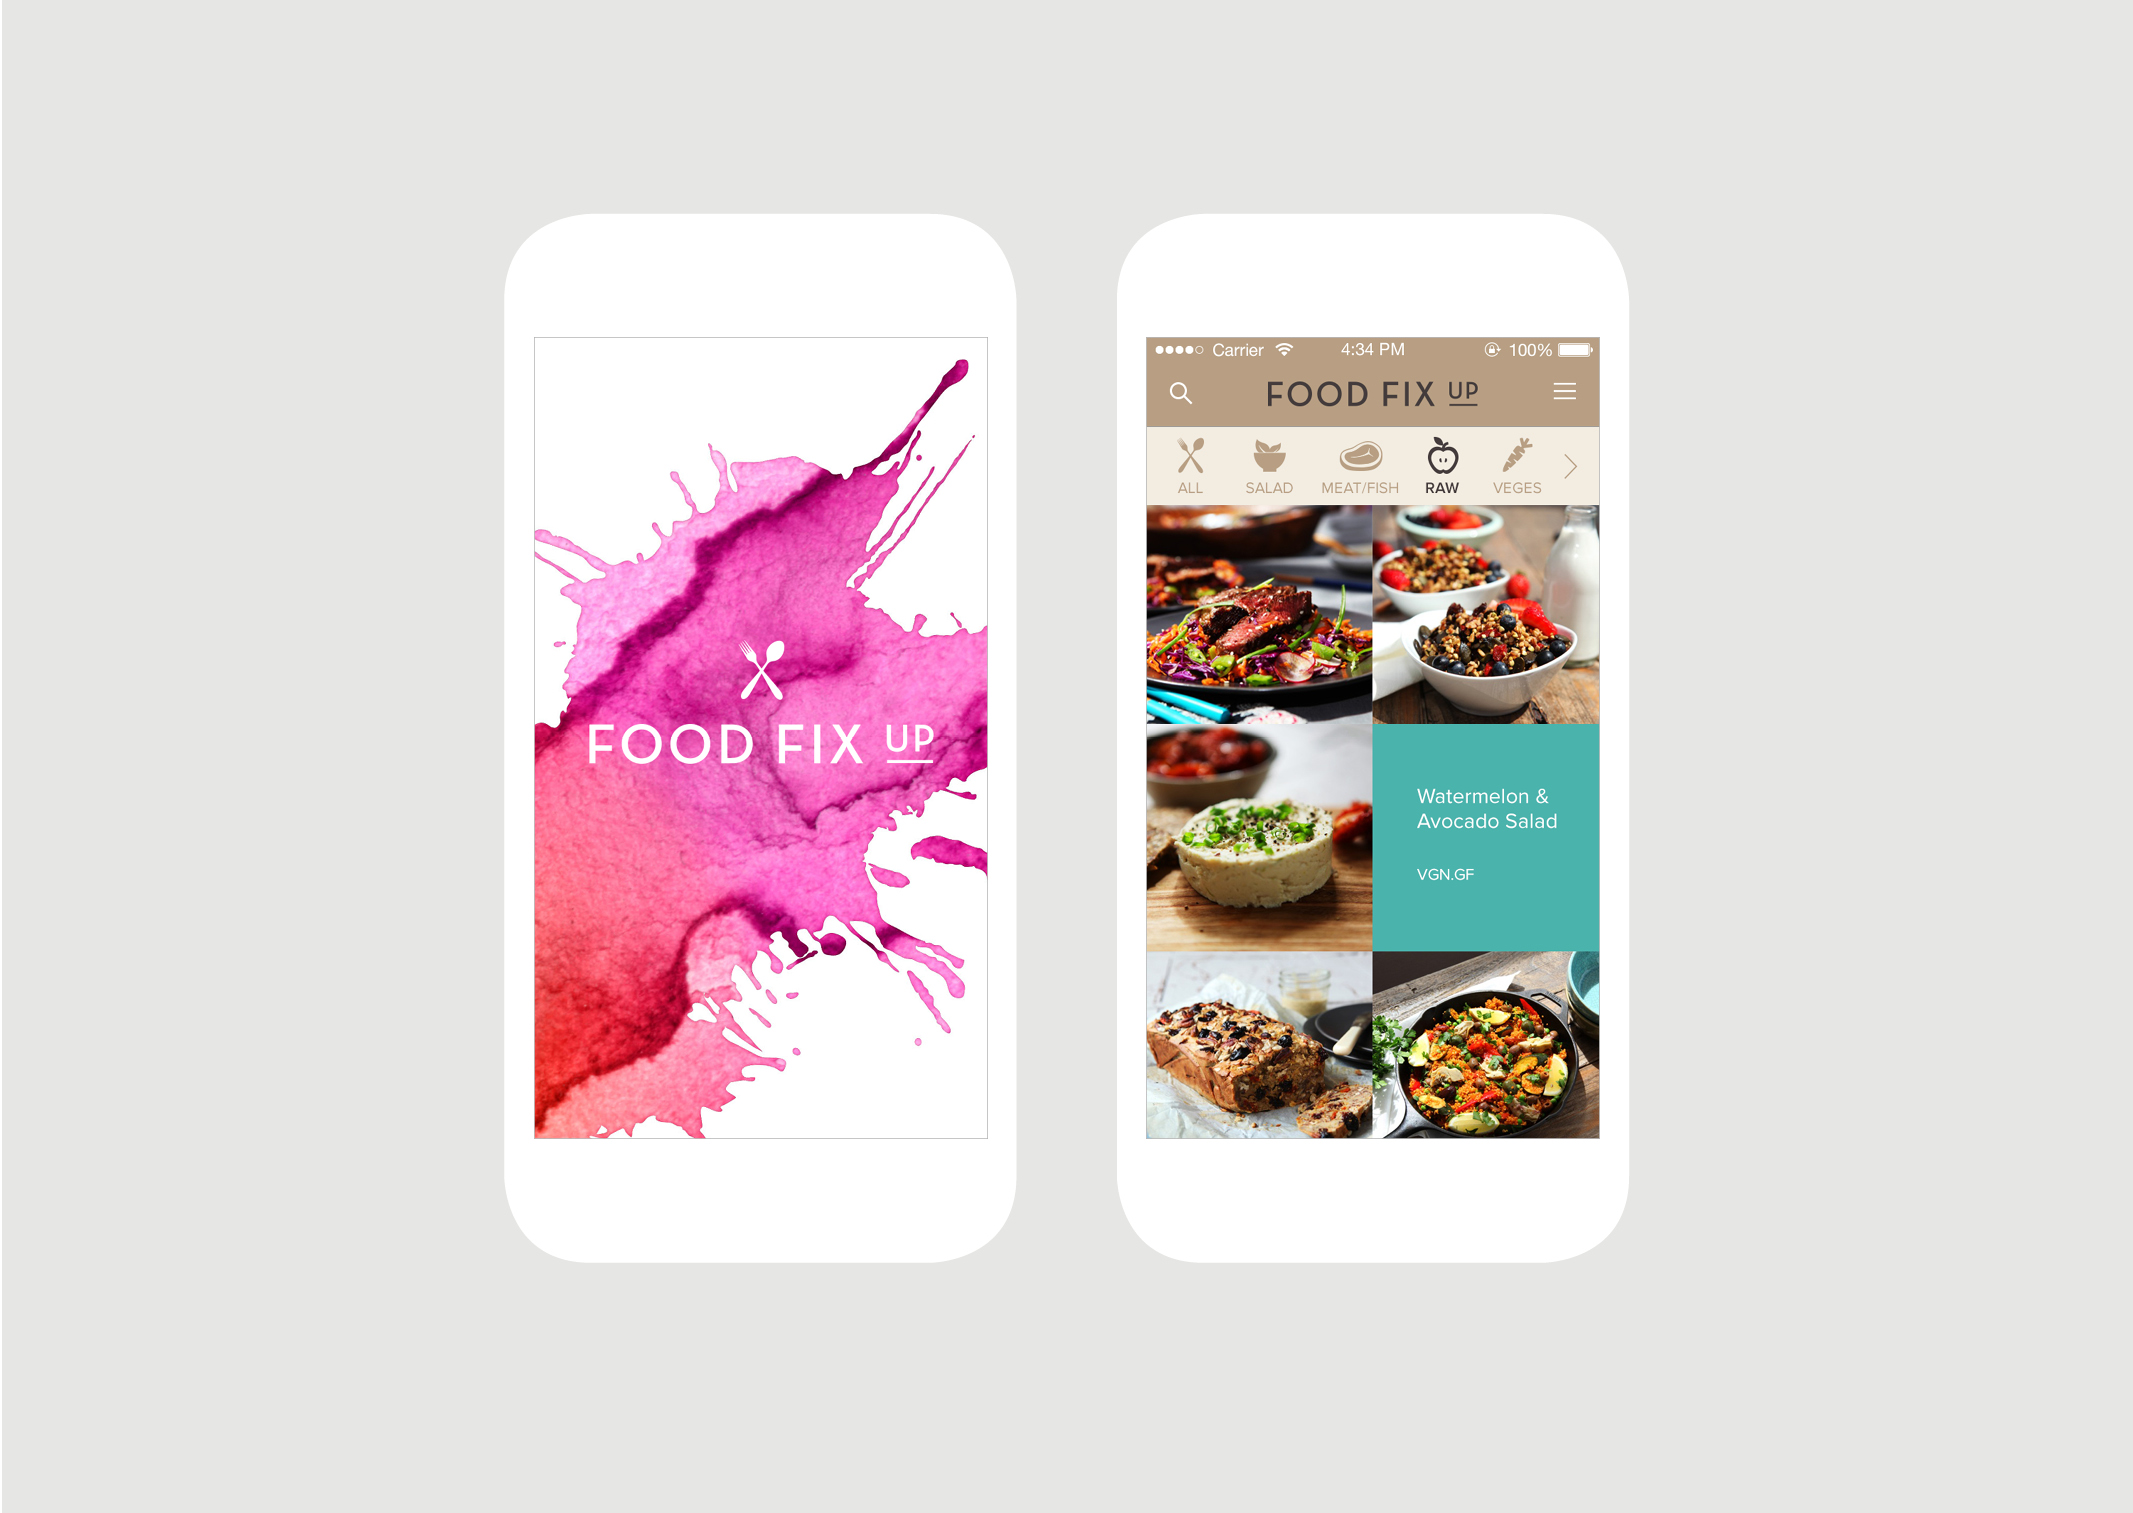 Food Fix Up App Splash screen and main Recipe screens feature delicious food photography